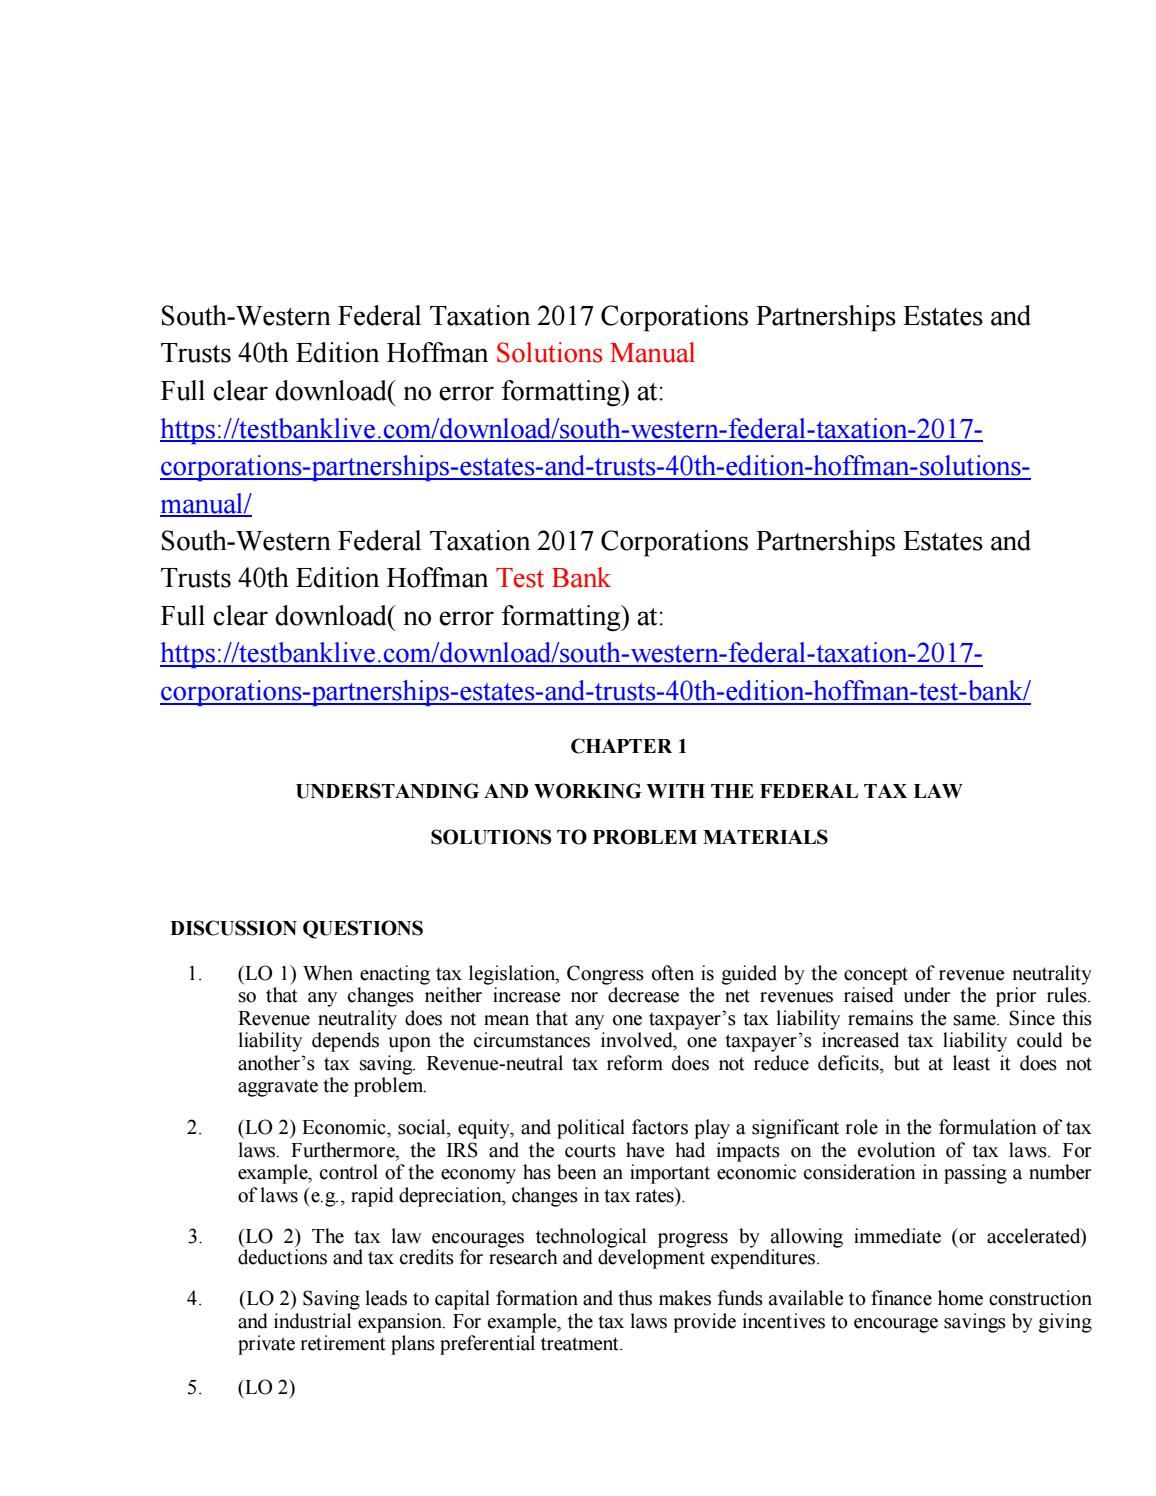 South western federal taxation 2017 corporations partnerships south western federal taxation 2017 corporations partnerships estates and trusts 40th edition hoffma by hiwir282 issuu fandeluxe Images